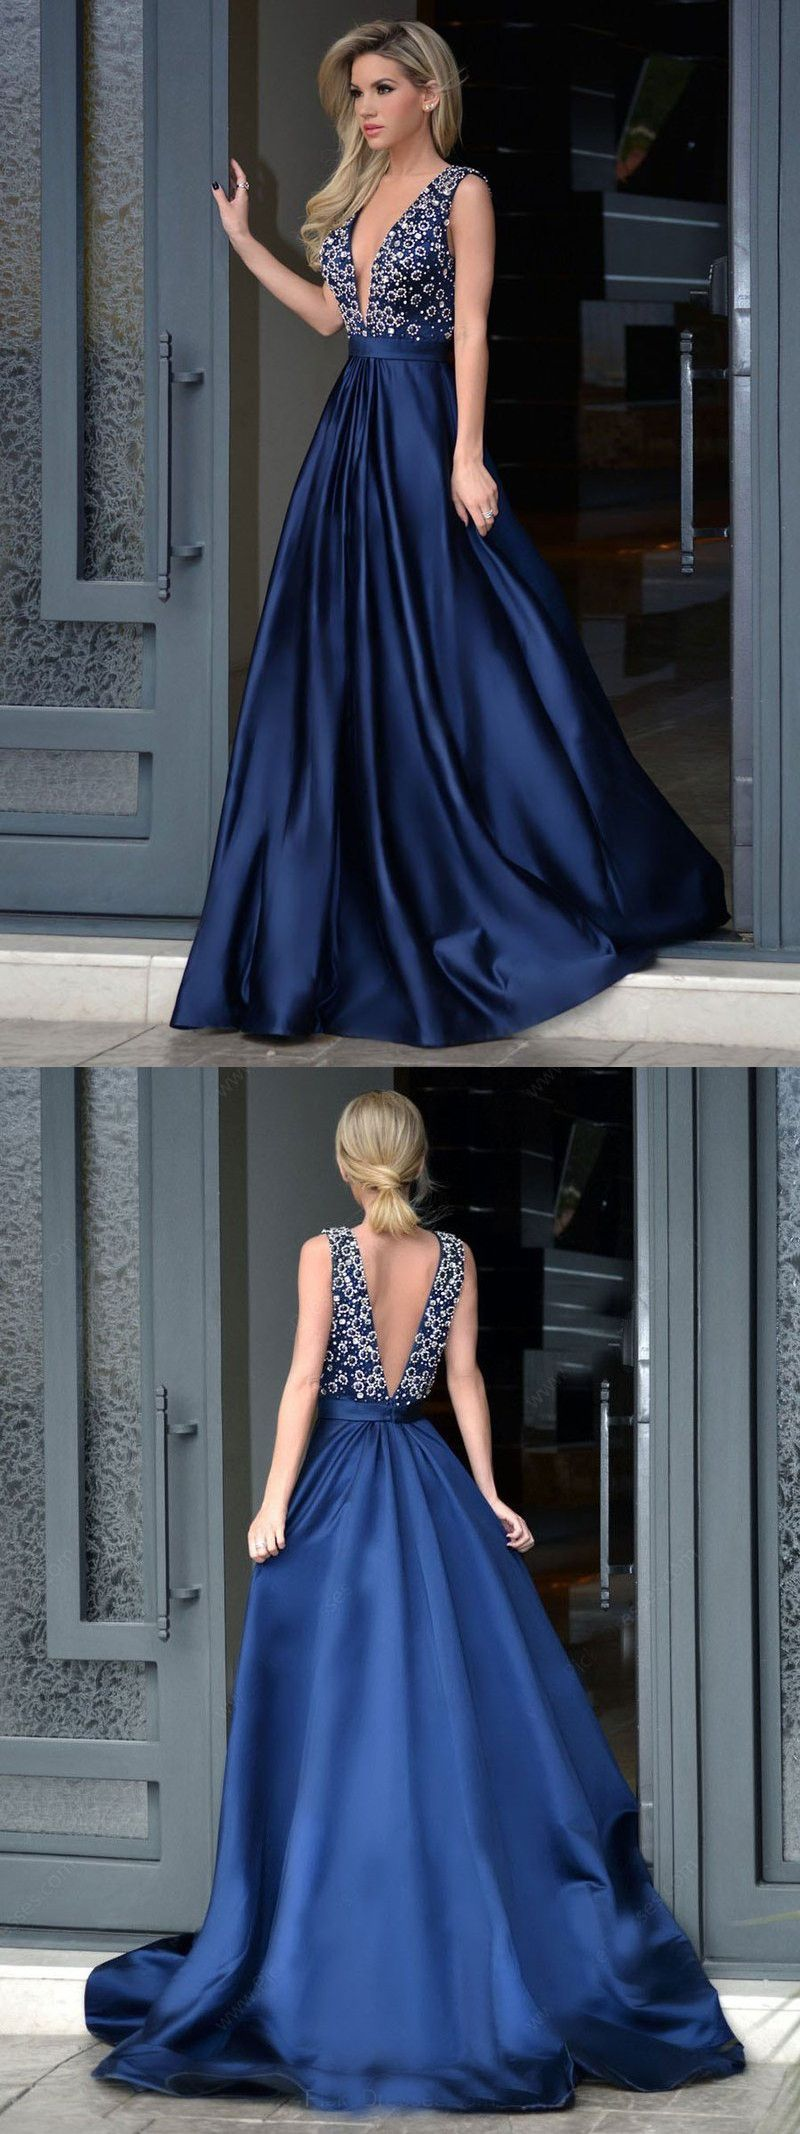 Navy blue long prom dress beads long prom dress formal